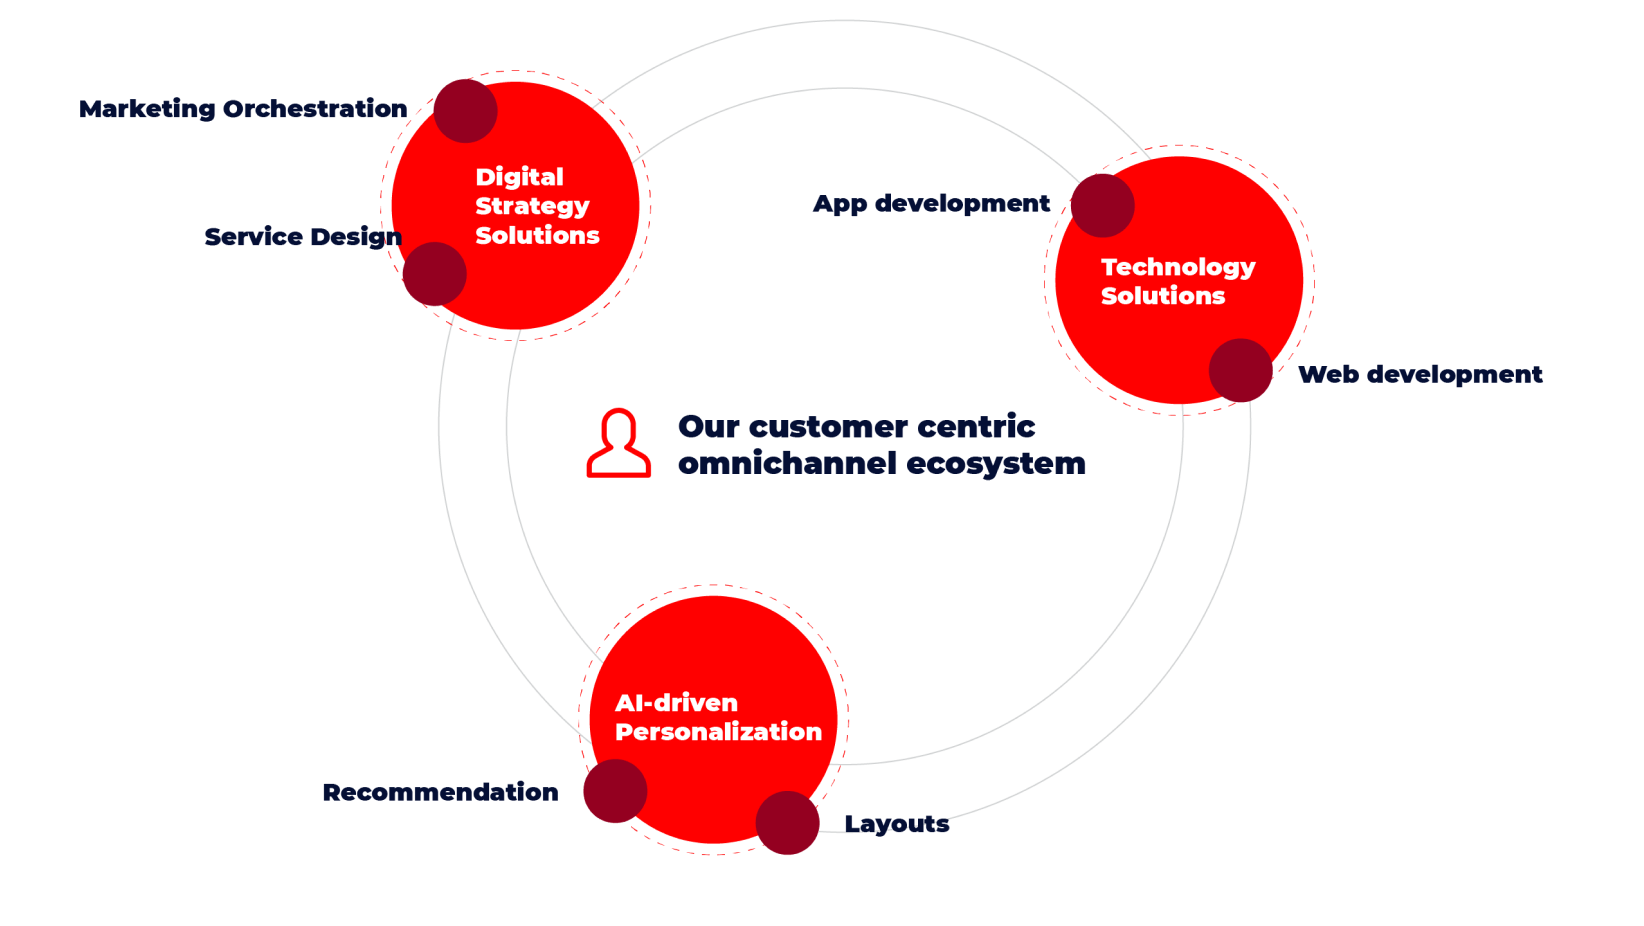 customer centric omnicahannel approach